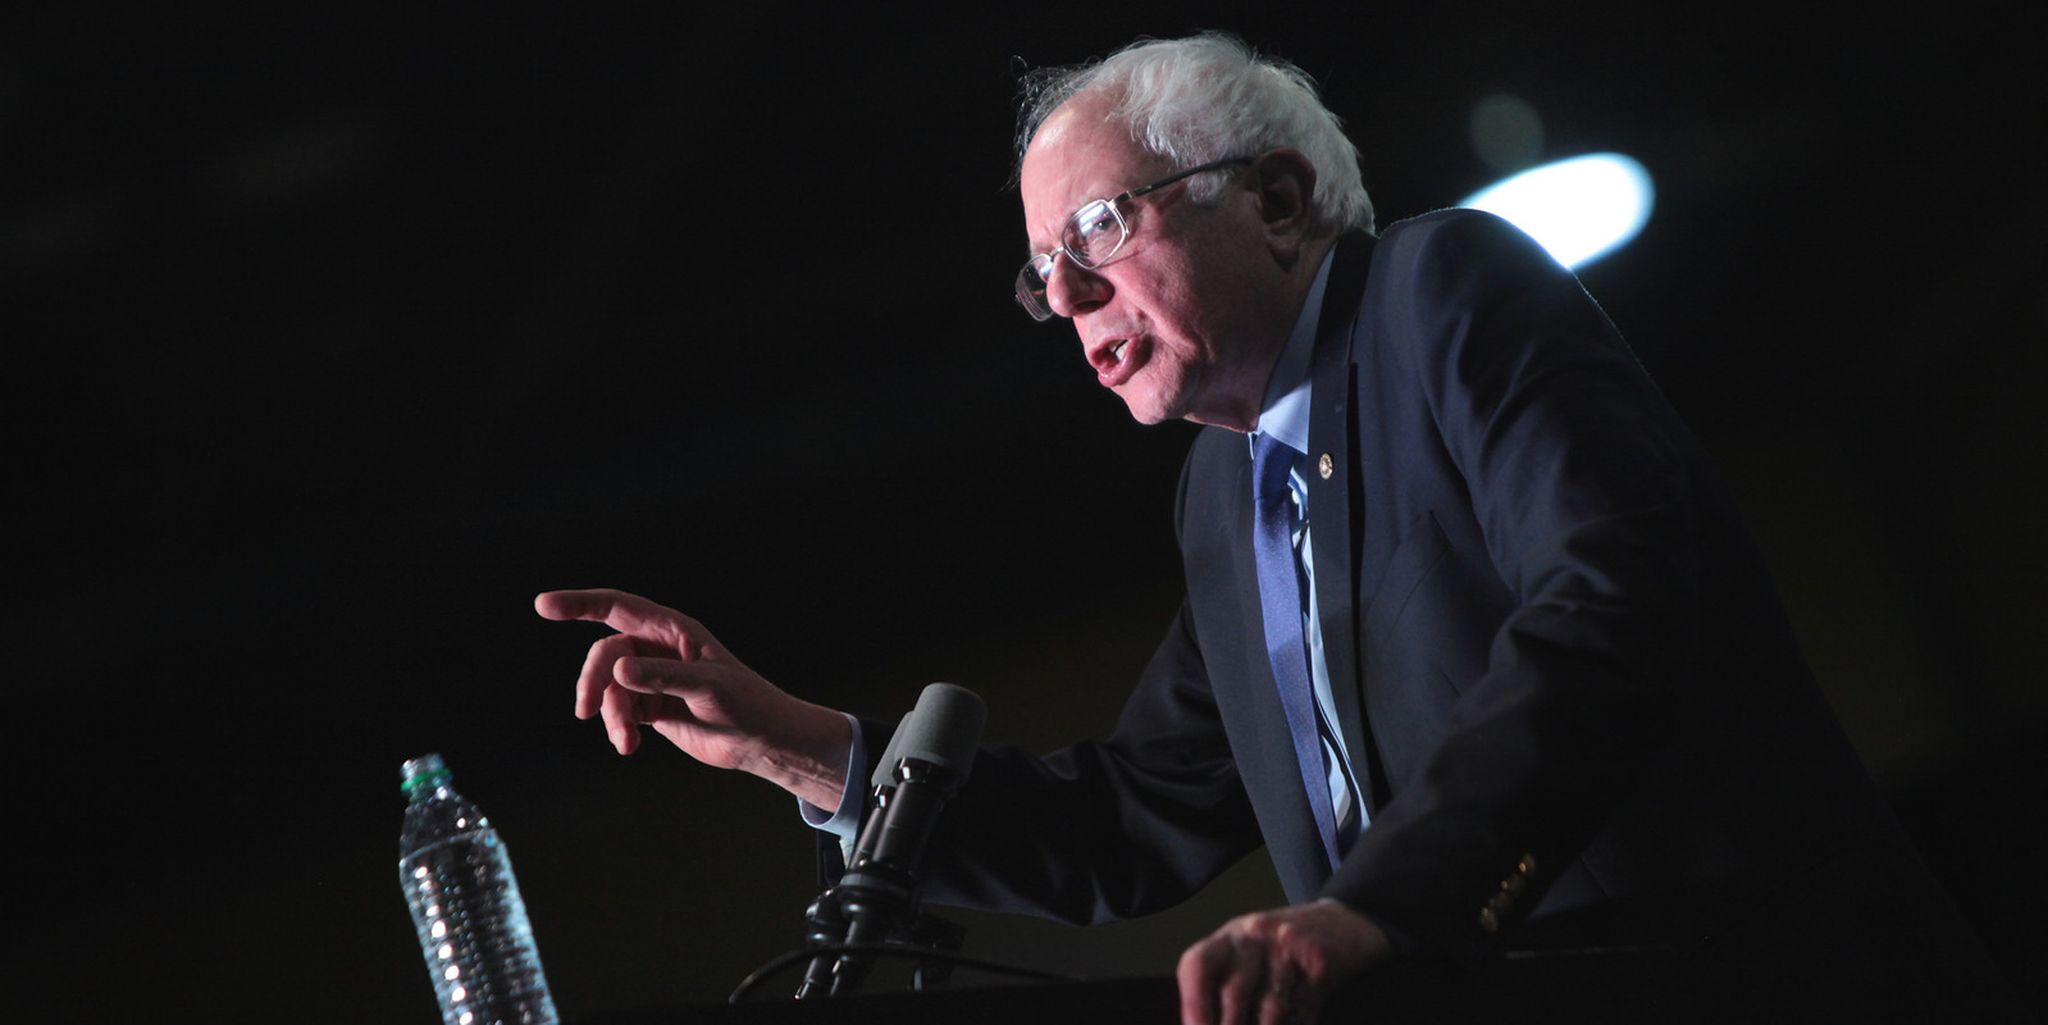 Bernie Sanders standing on stage with his finger pointing